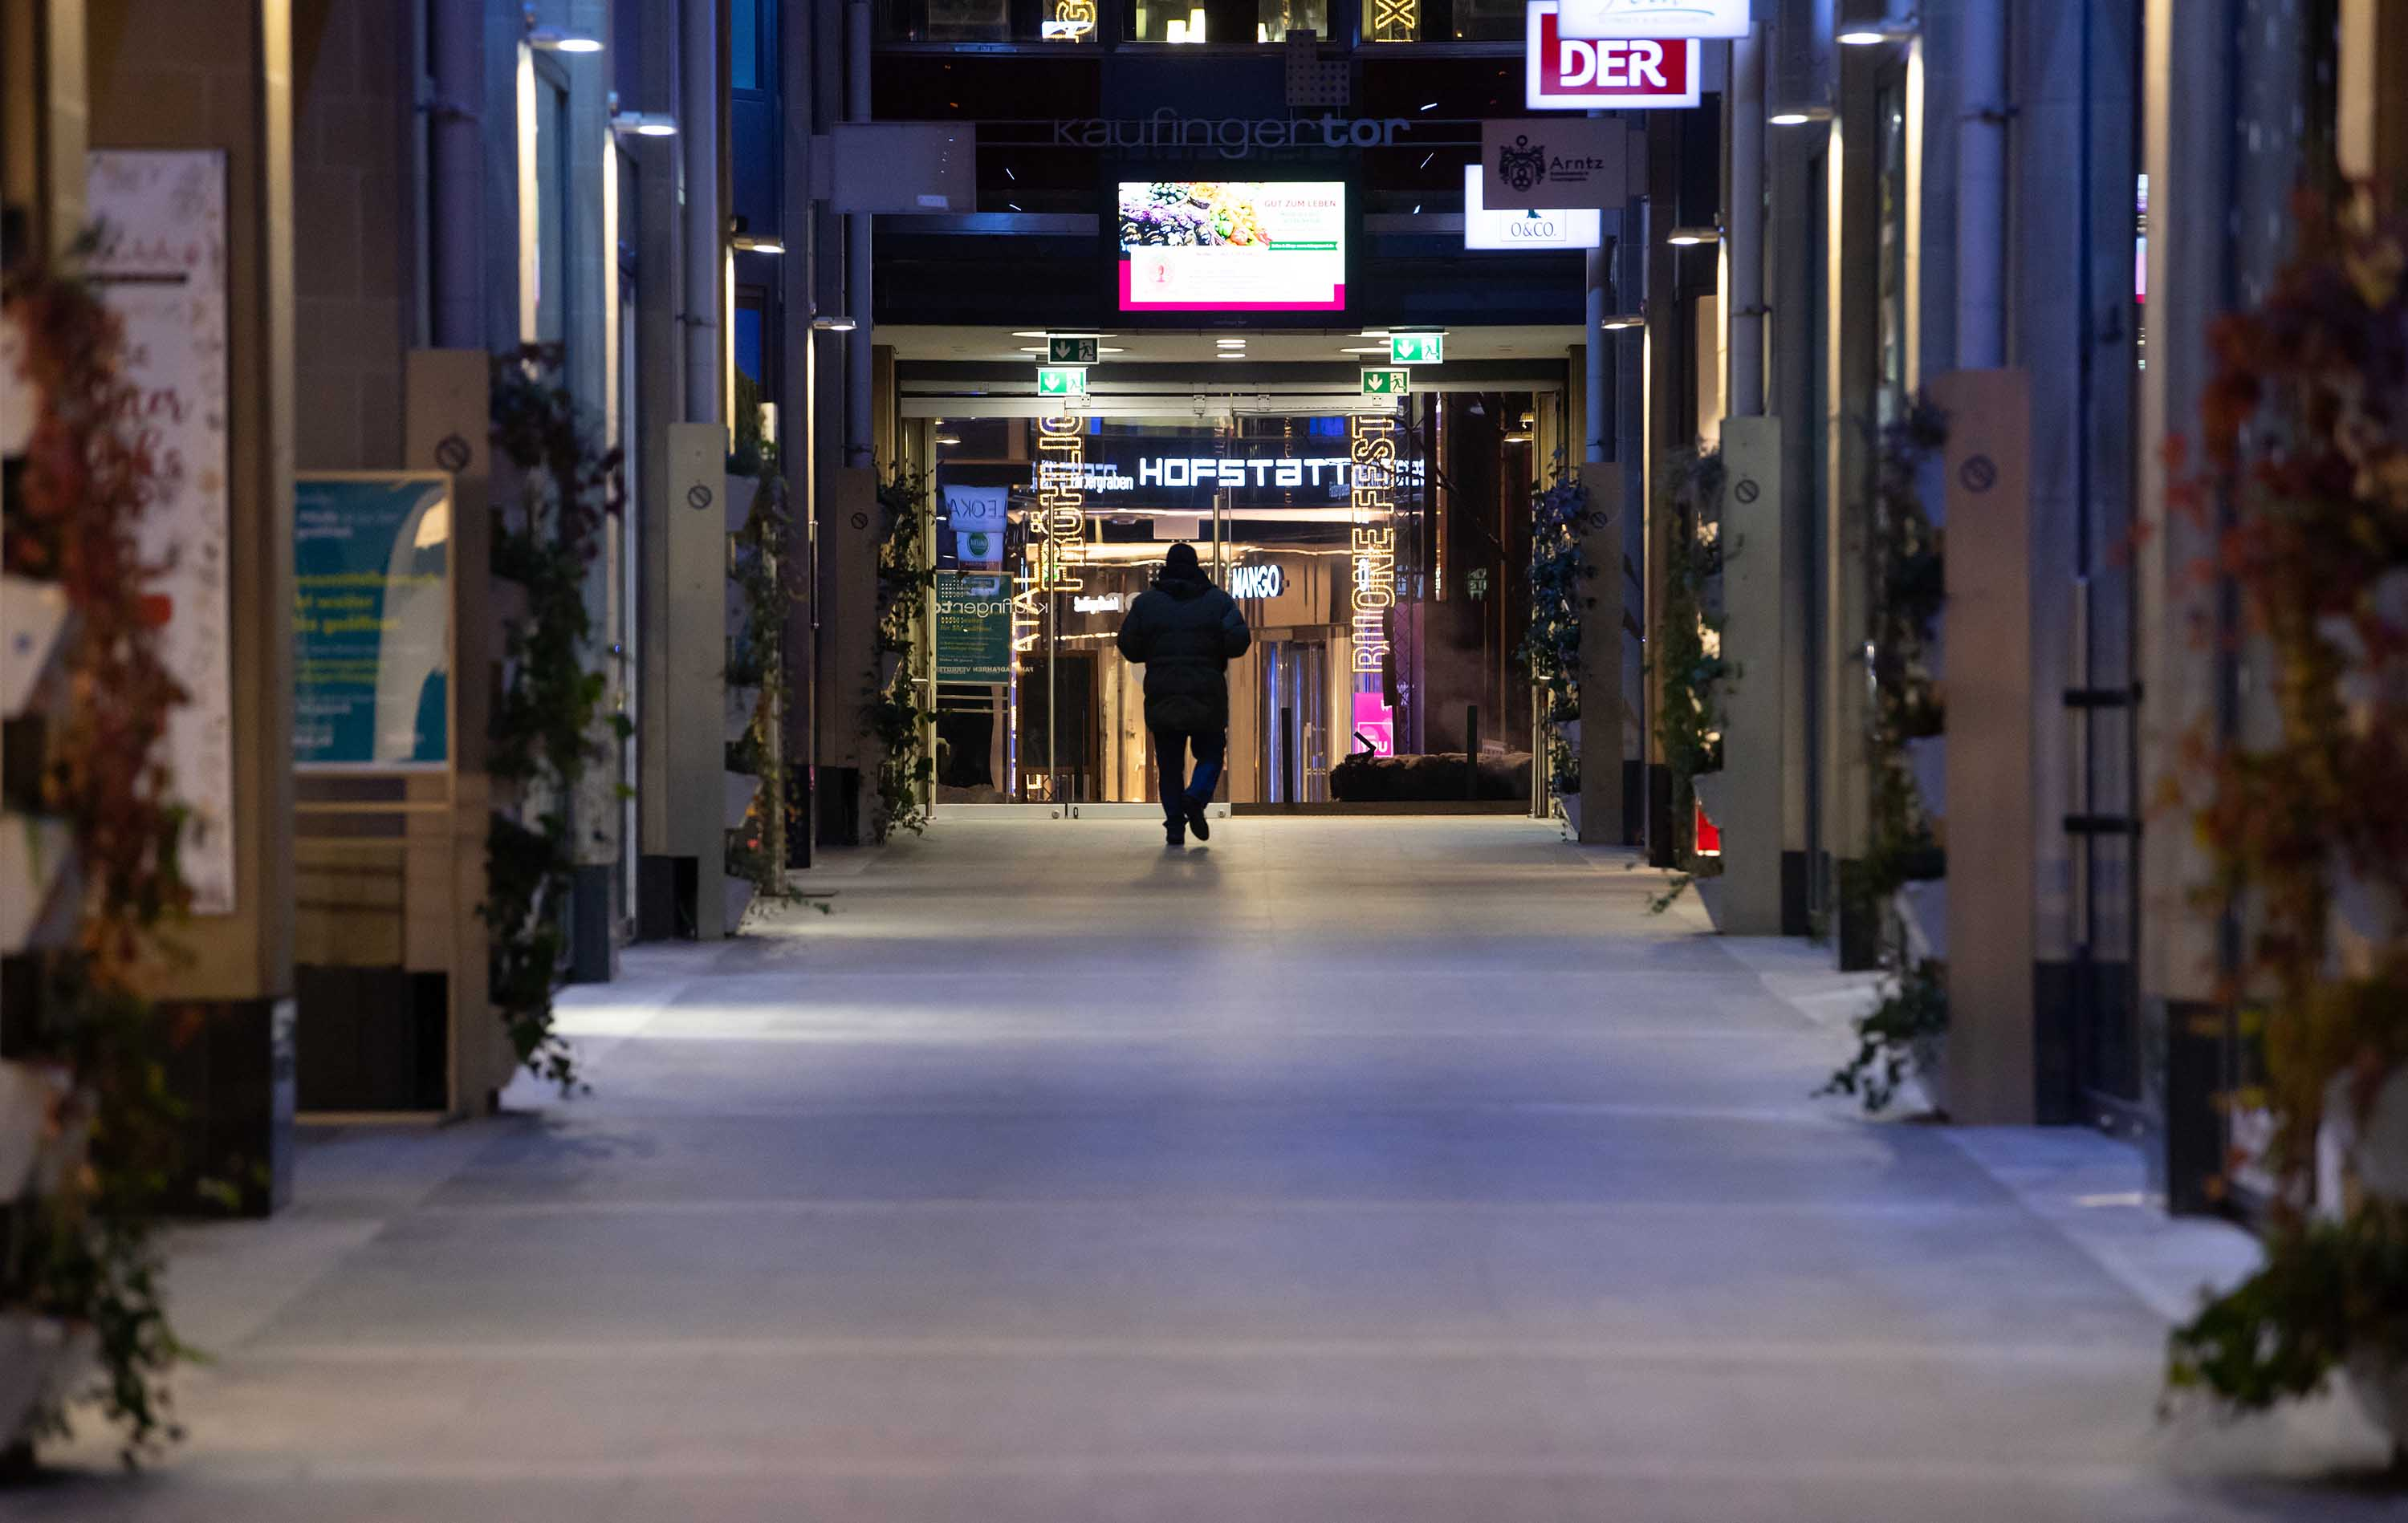 A person walks through a deserted shopping arcade in Munich, Germany, on Monday, January 11.